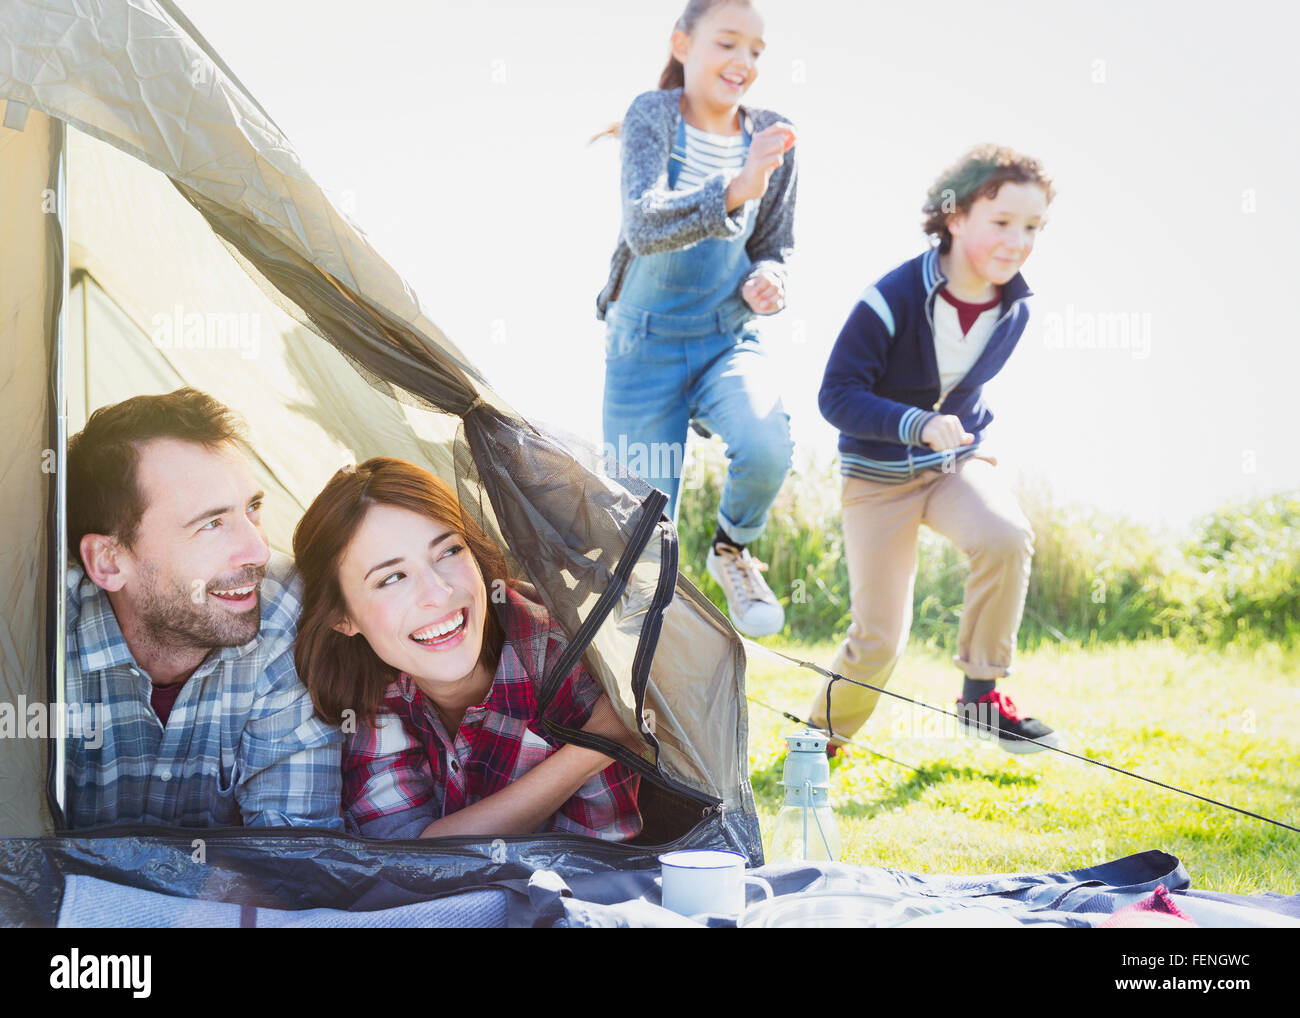 Smiling couple in tent watching kids running in grass  sc 1 st  Alamy & Smiling couple in tent watching kids running in grass Stock Photo ...